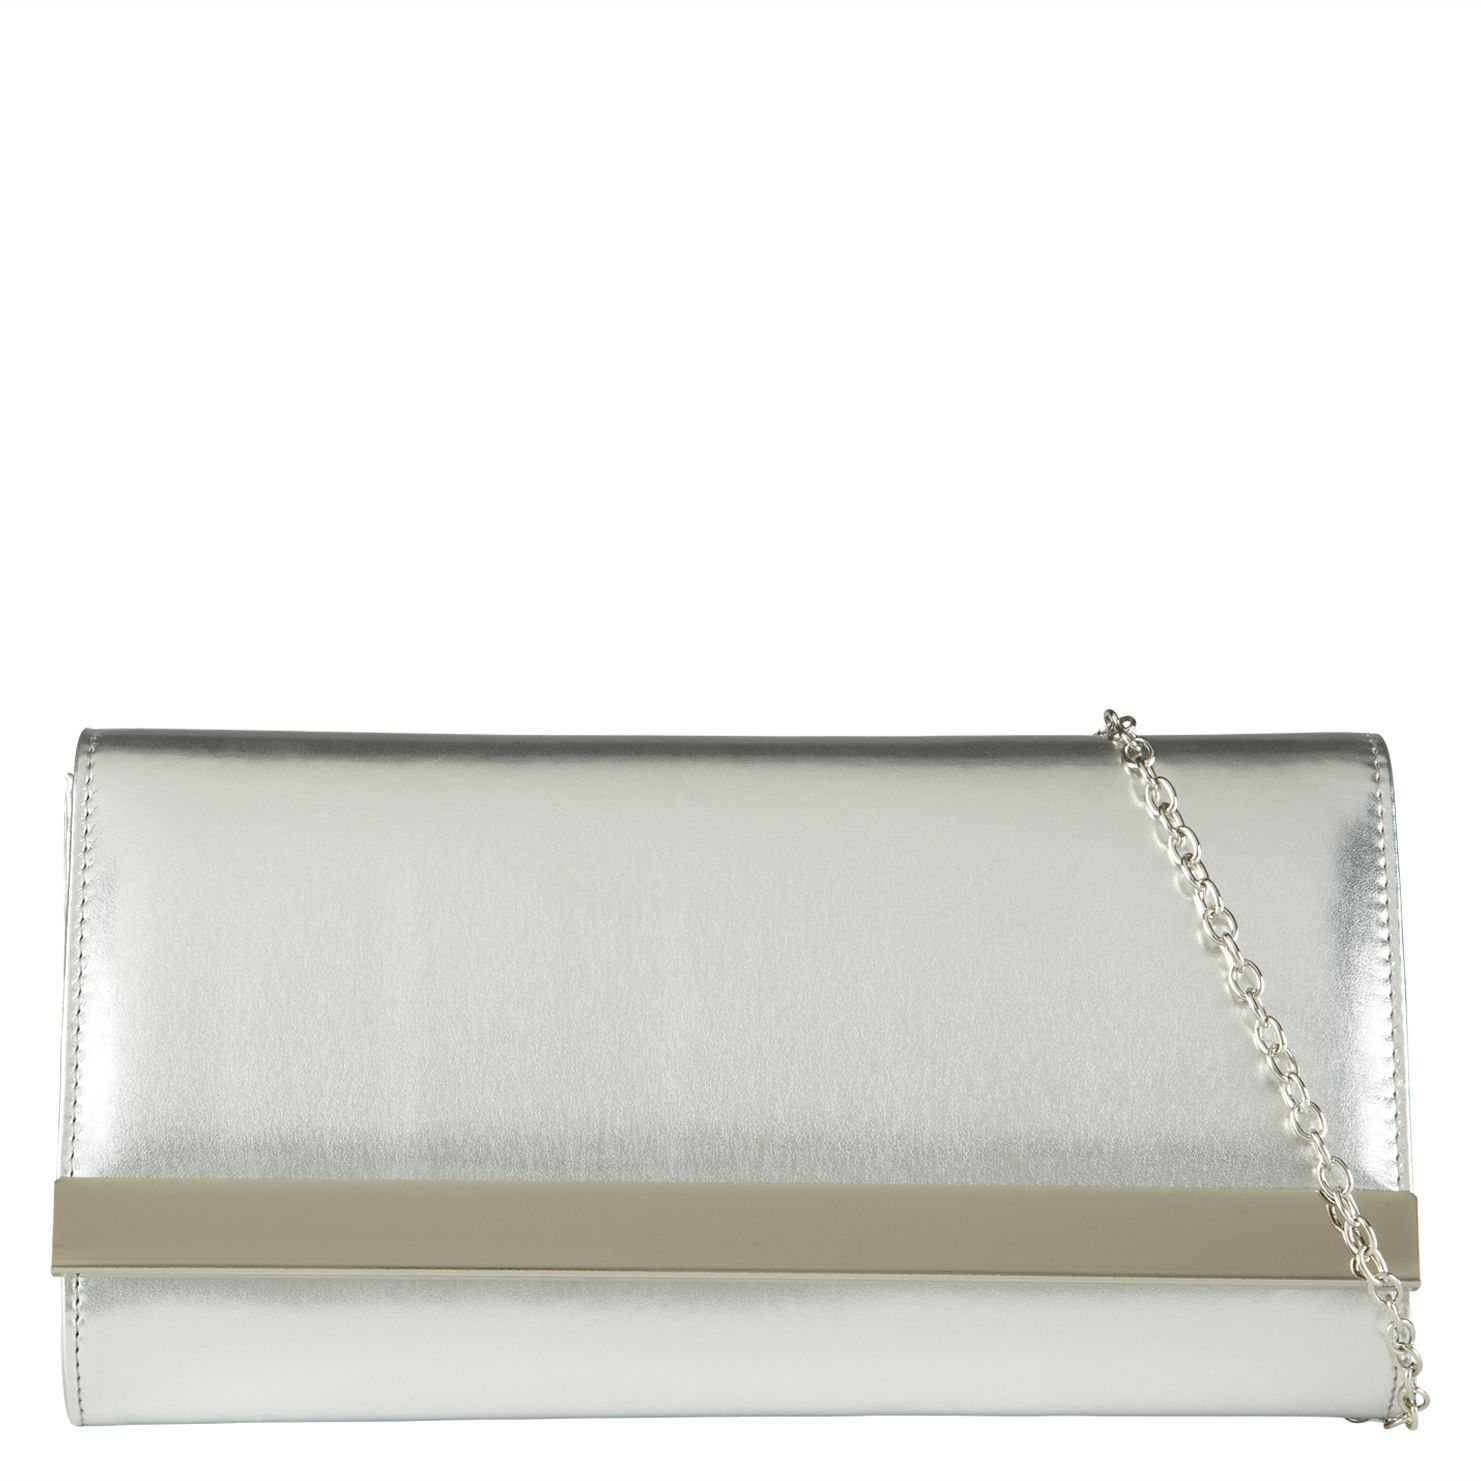 Hoving clutch handbag